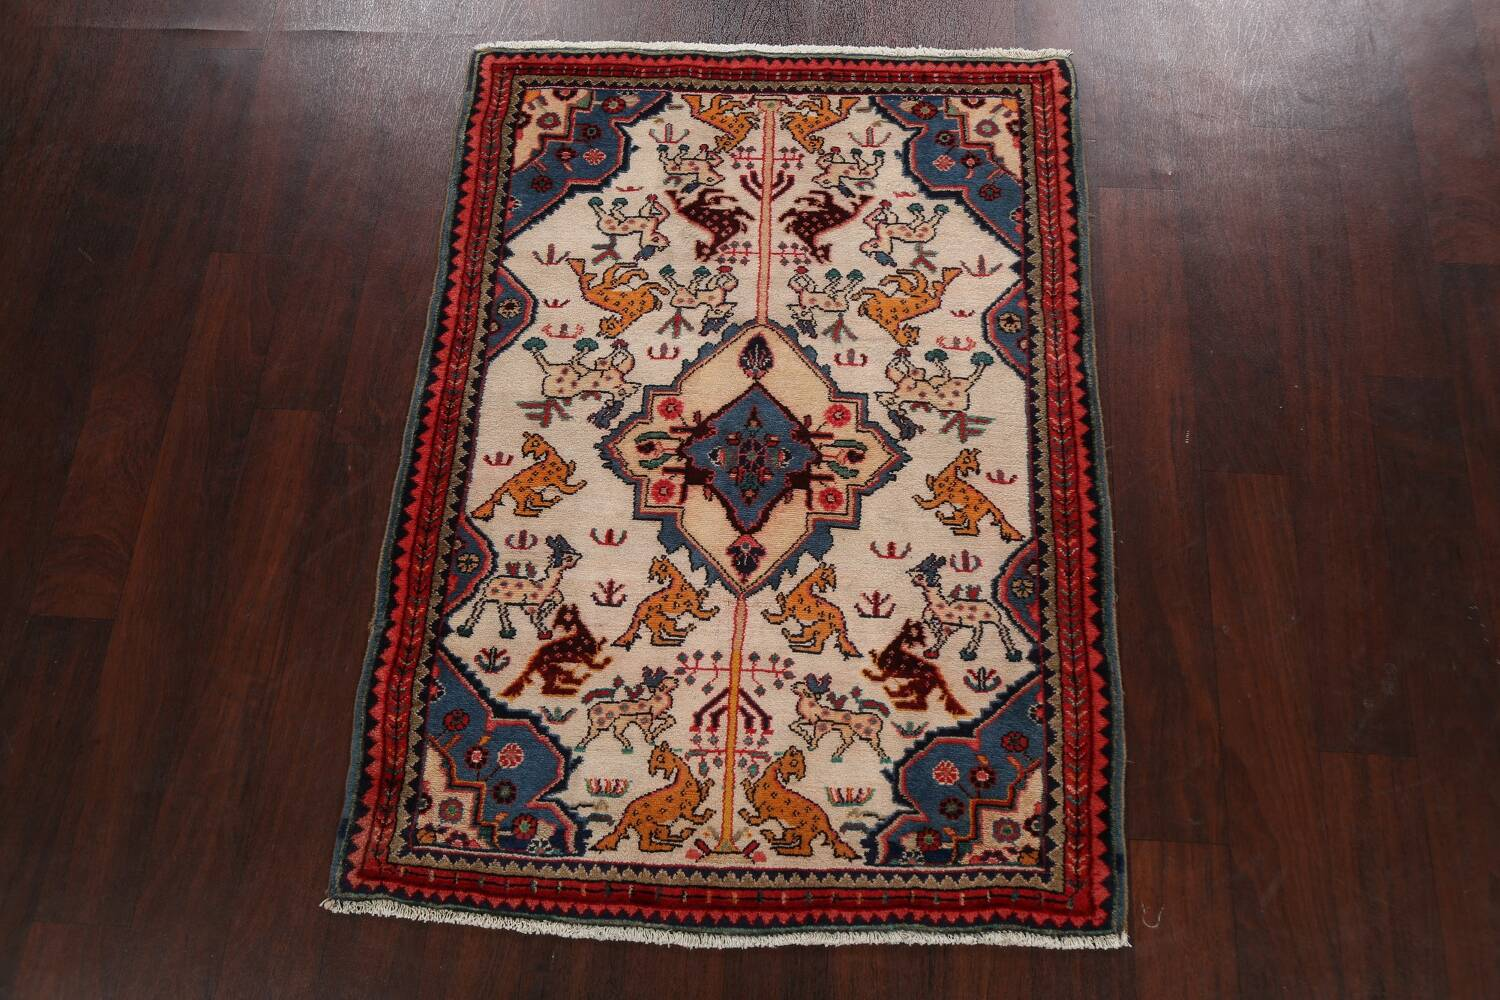 Animal Pictorial Vegetable Dye Senneh Persian Area Rug 3x5 image 14